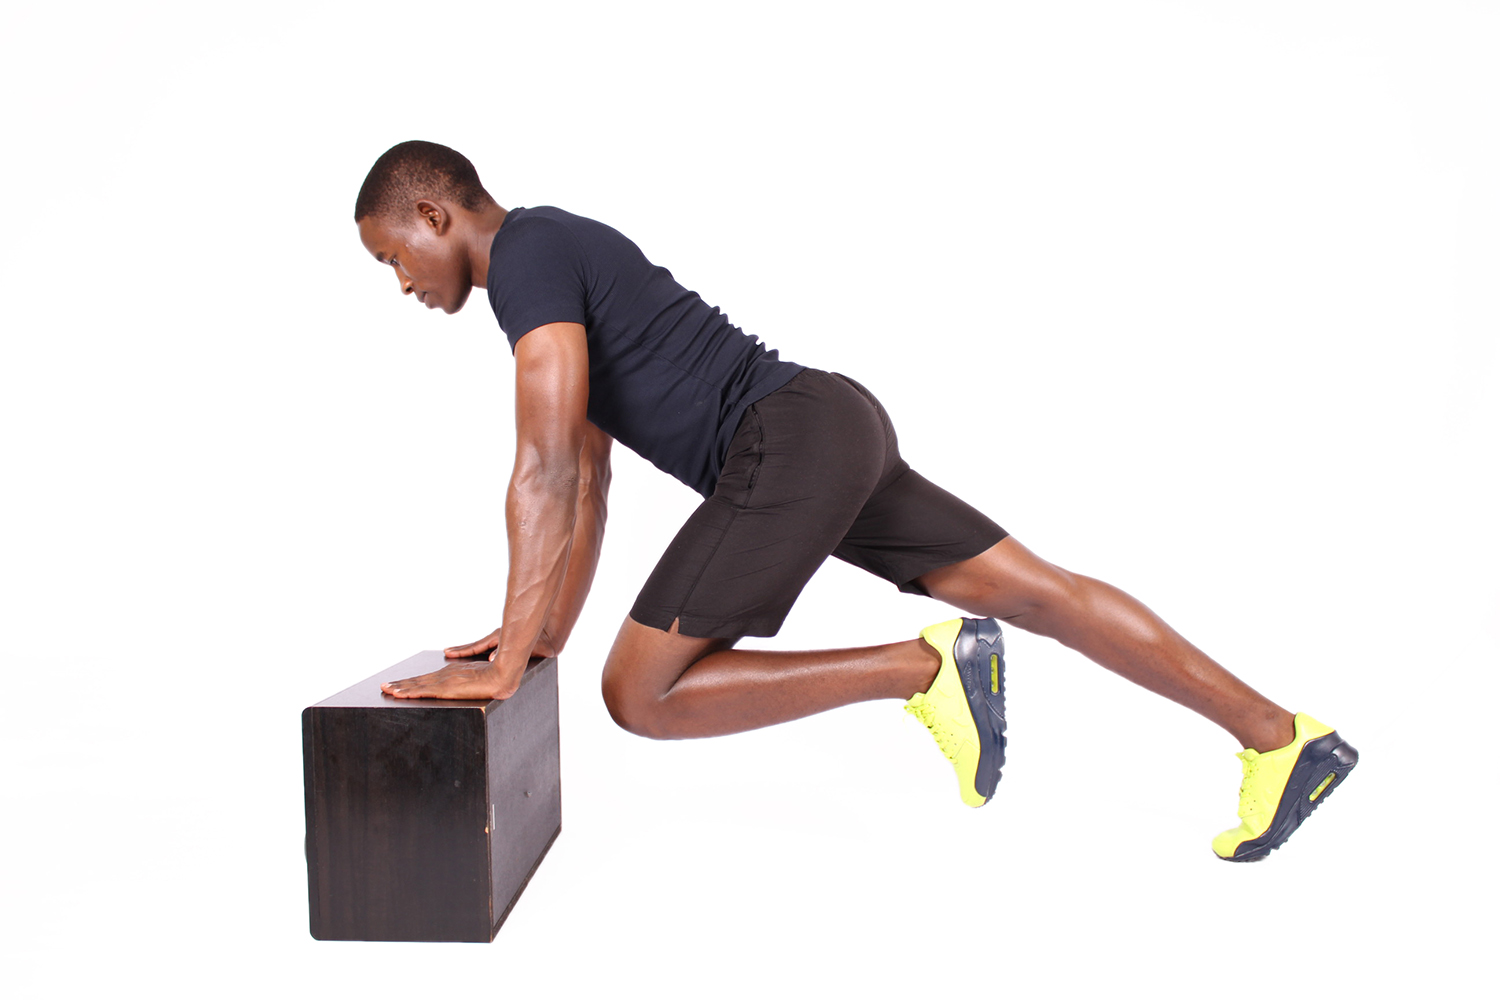 Fit man doing elevated mountain climbers exercise